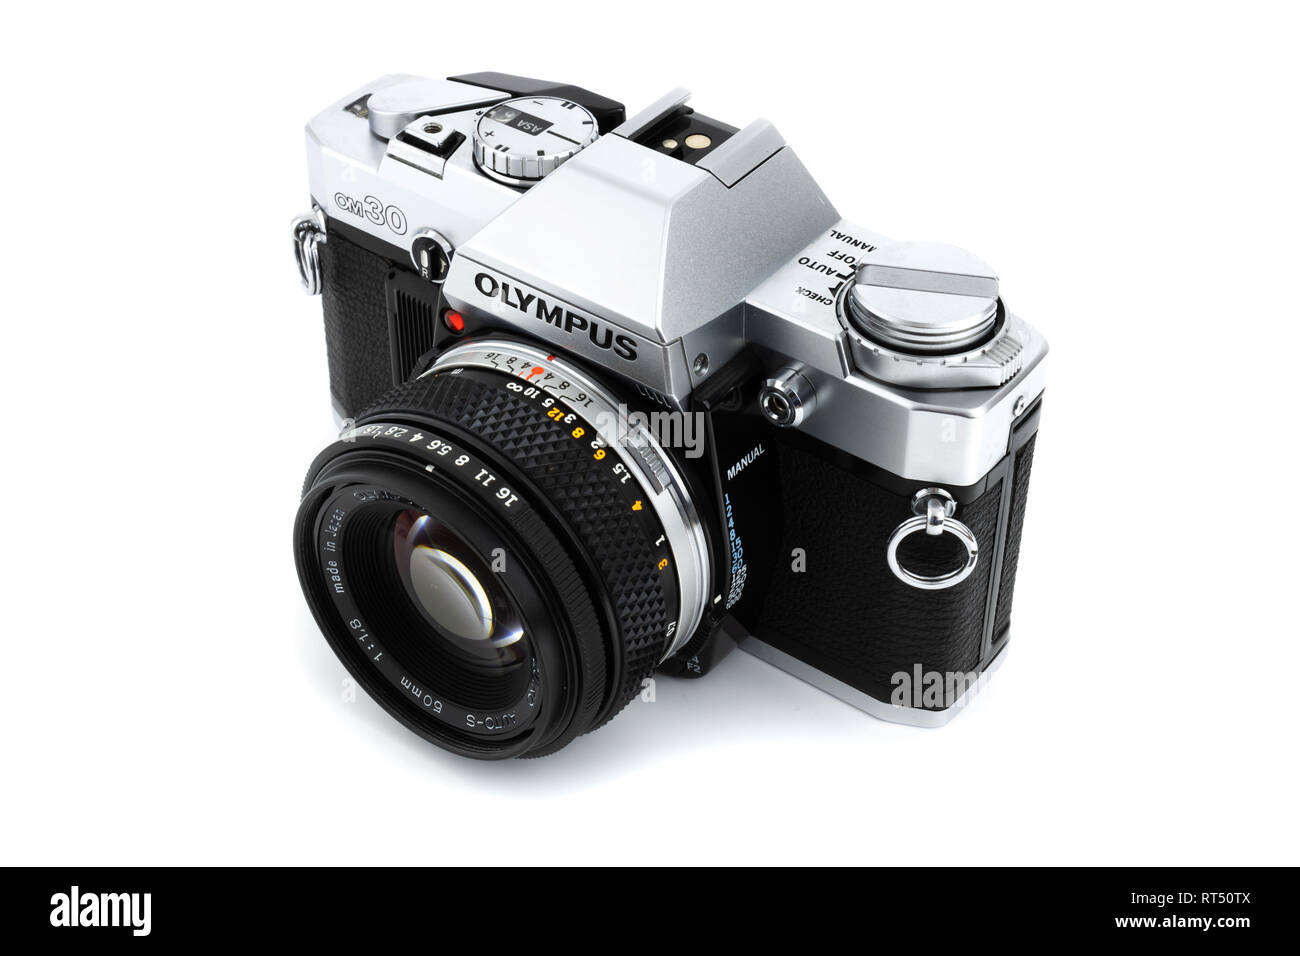 Prague, CZECH REPUBLIC - FEBRUARY 21, 2019: Olympus OM-30 a 35mm film SLR camera, launched by Olympus Corporation, laid on white background Stock Photo